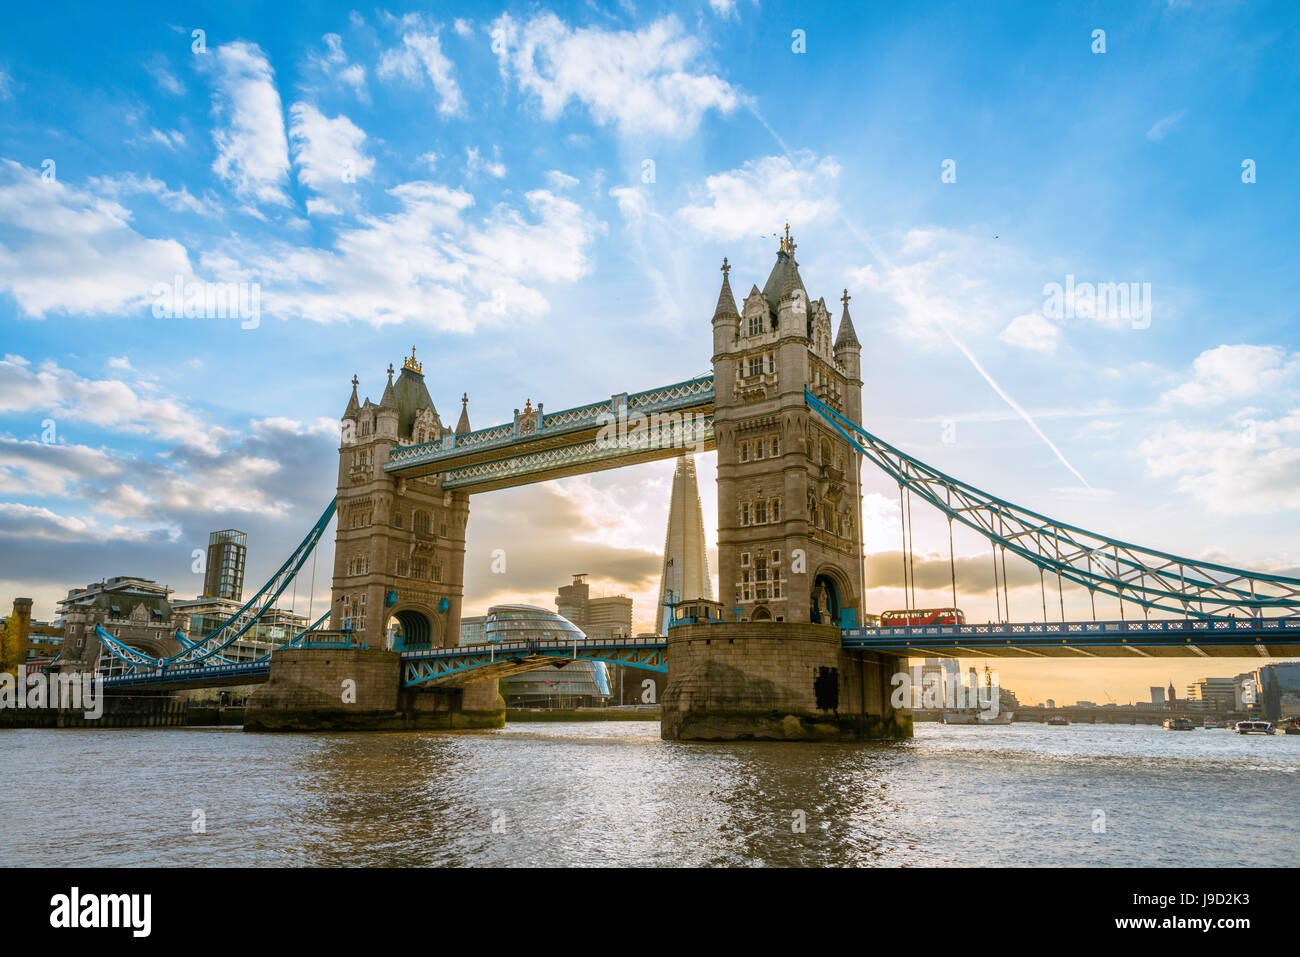 Tower Bridge over the River Thames, London, England, United Kingdom - Stock Image